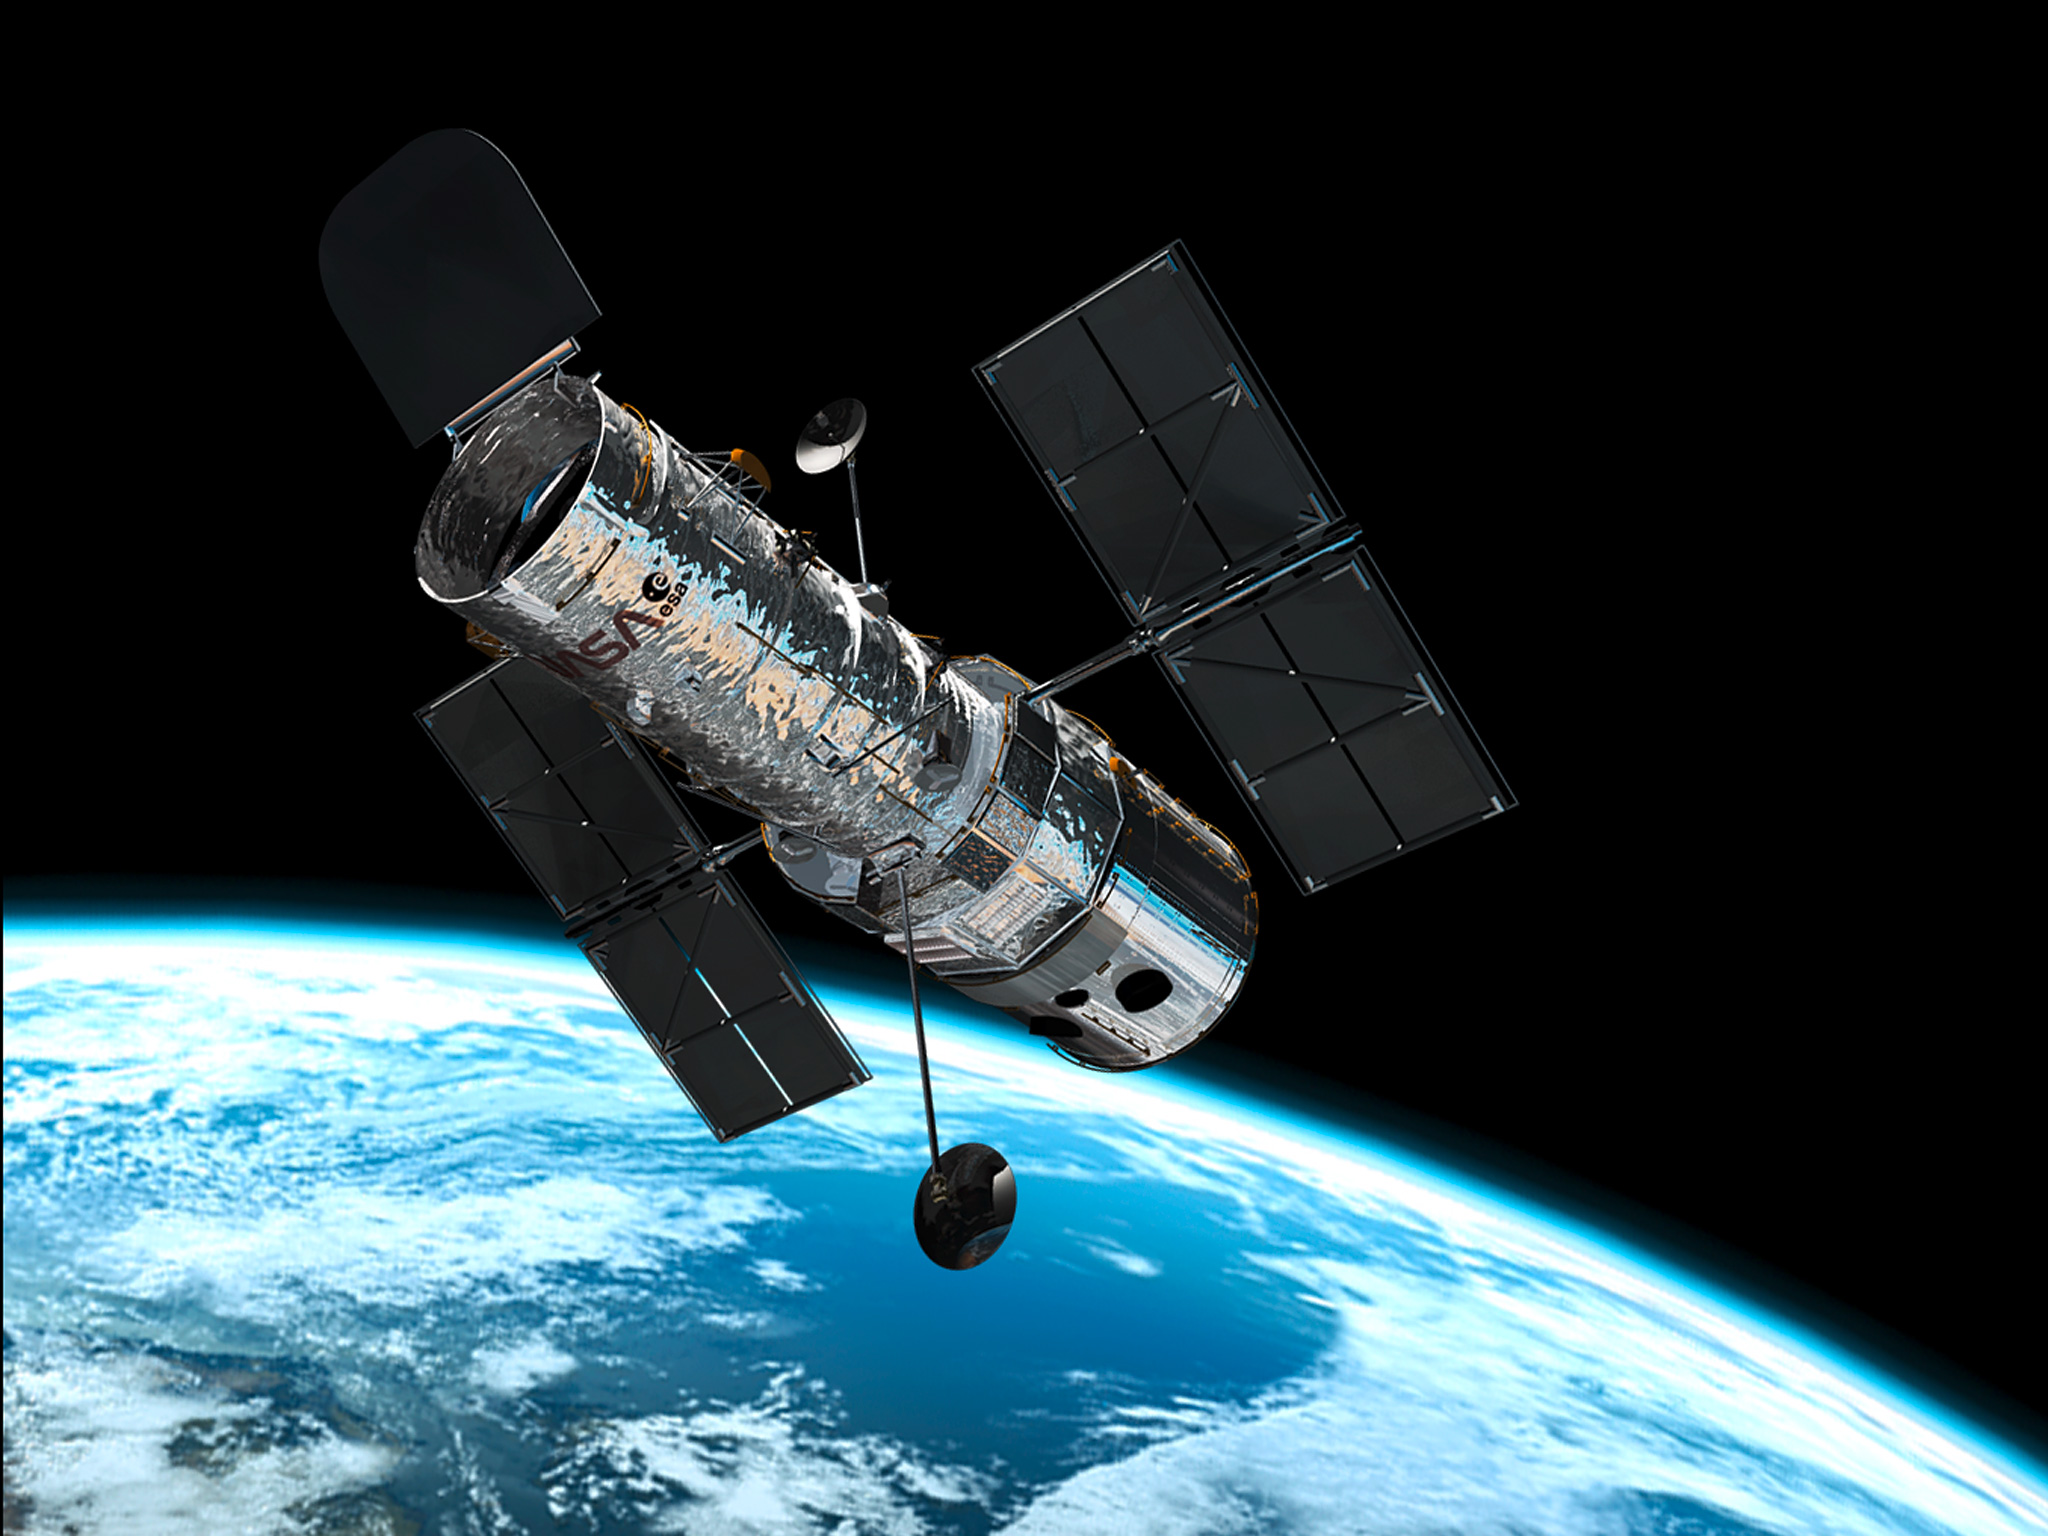 Hubble Telescope Images of Space The Hubble Space Telescope is